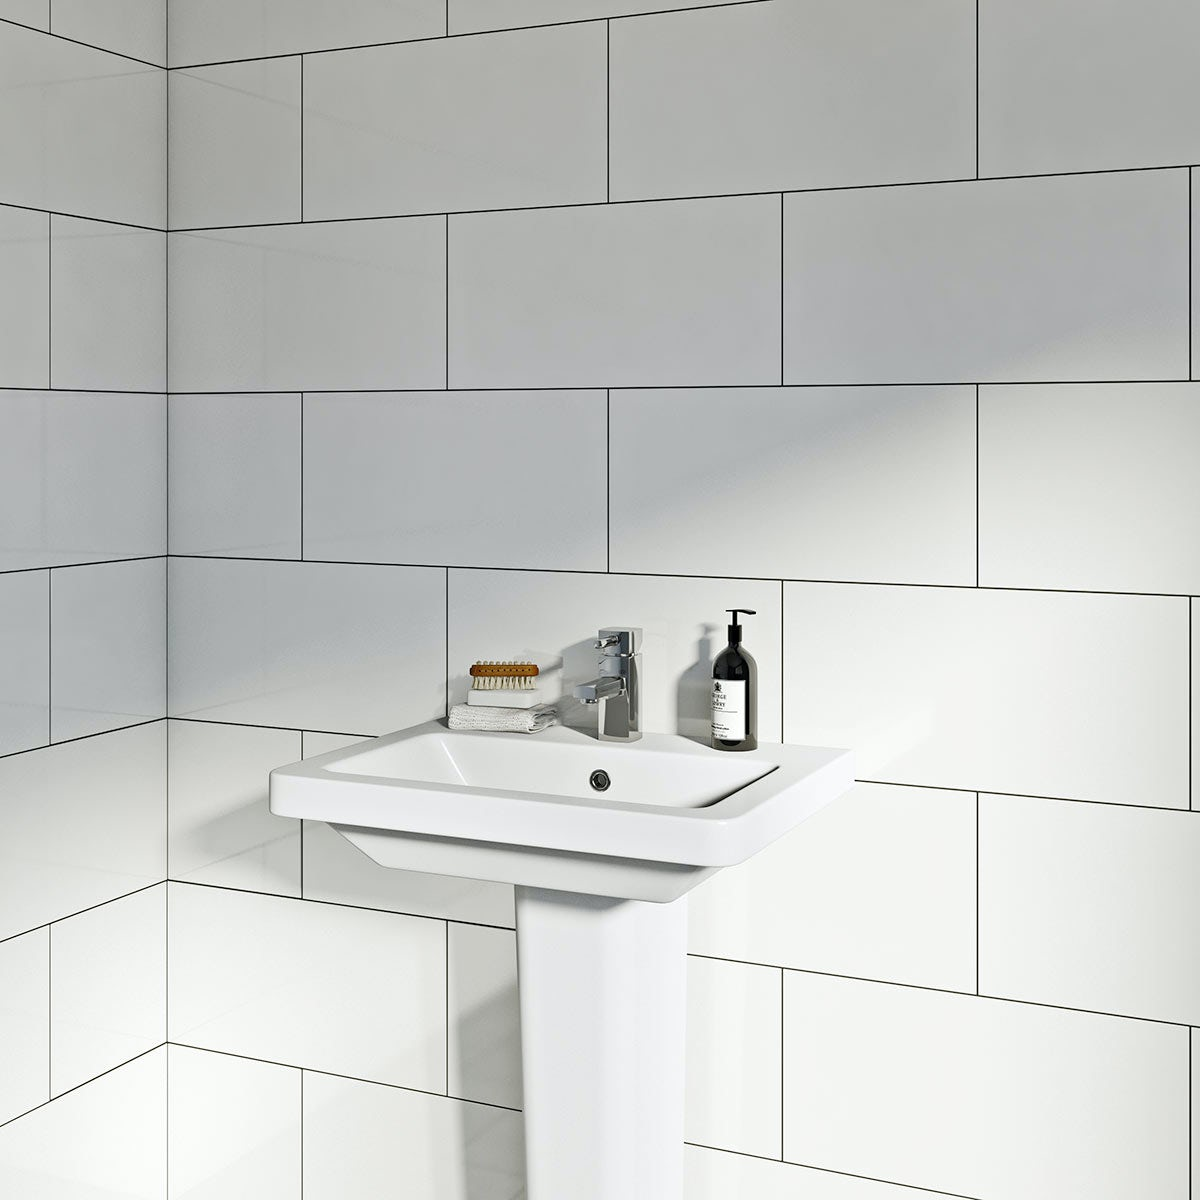 British ceramic tile pure white gloss tile 248mm x 498mm british ceramic tile pure white gloss tile 248mm x 498mm dailygadgetfo Images